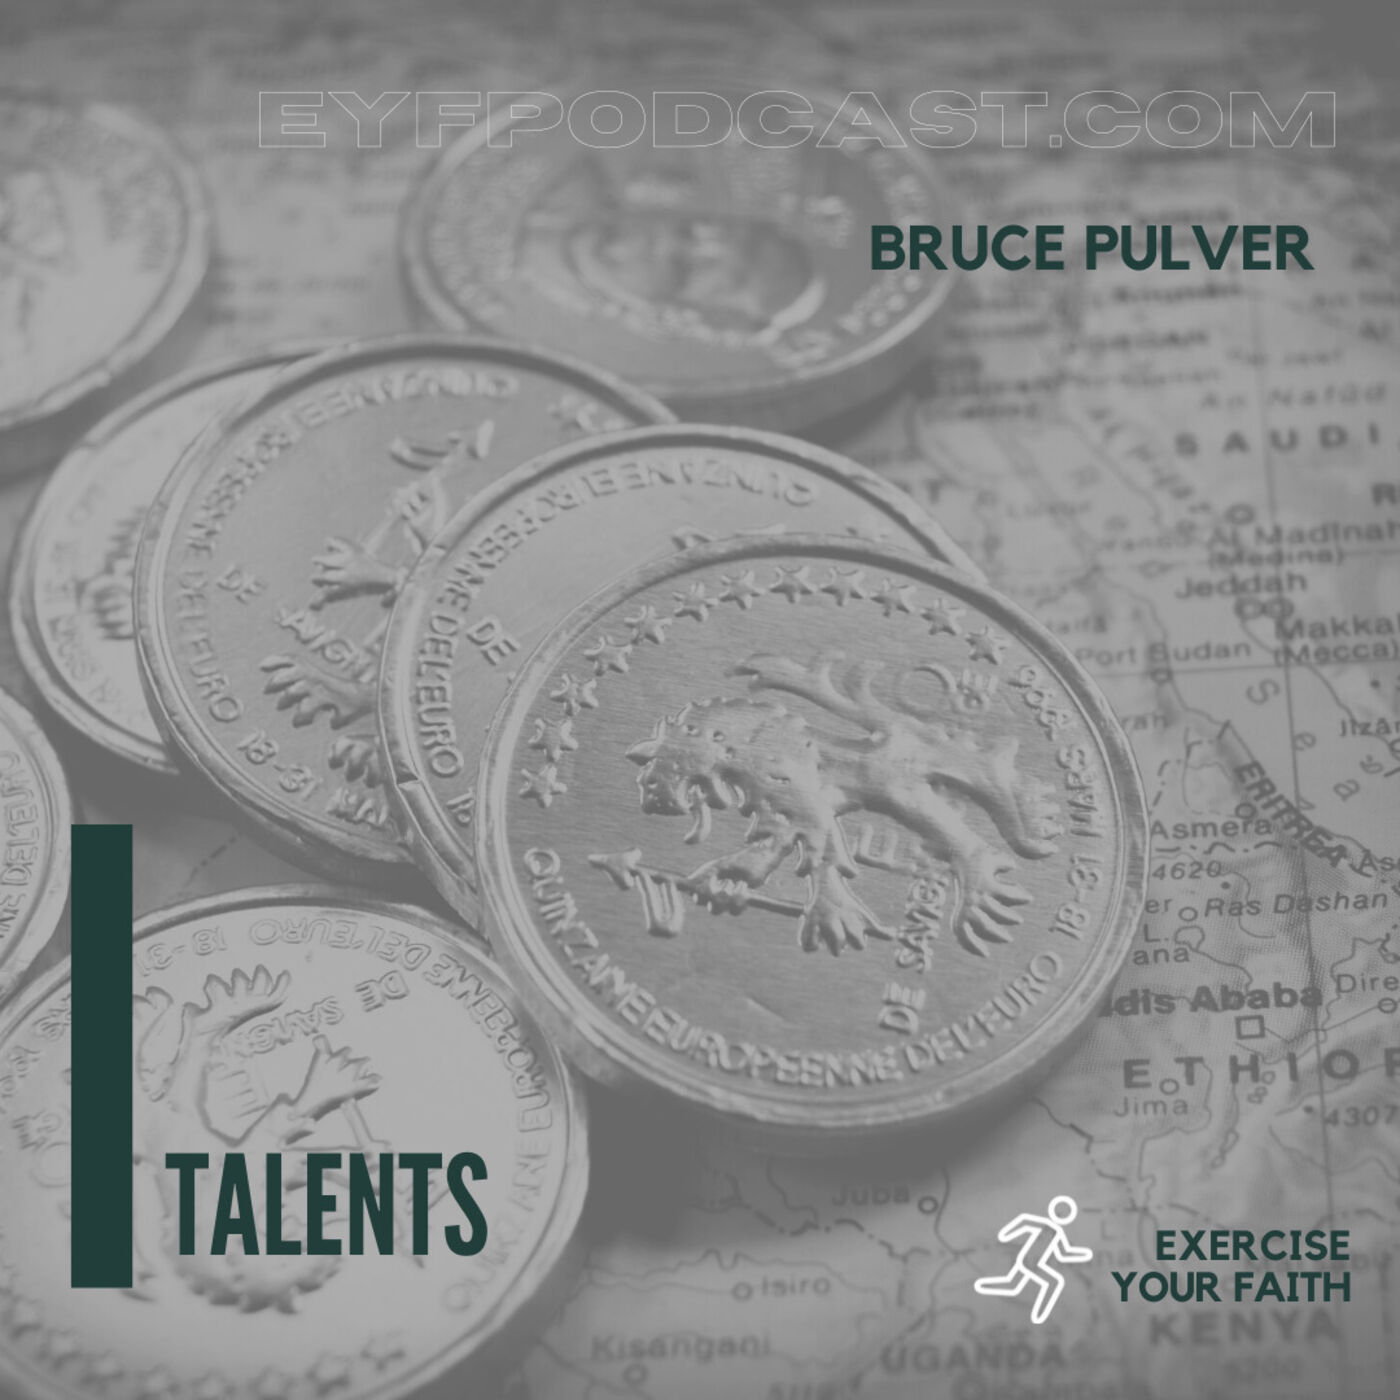 EYFPodcast- Exercise Your Faith by using your TALENTS for God with Bruce Pulver